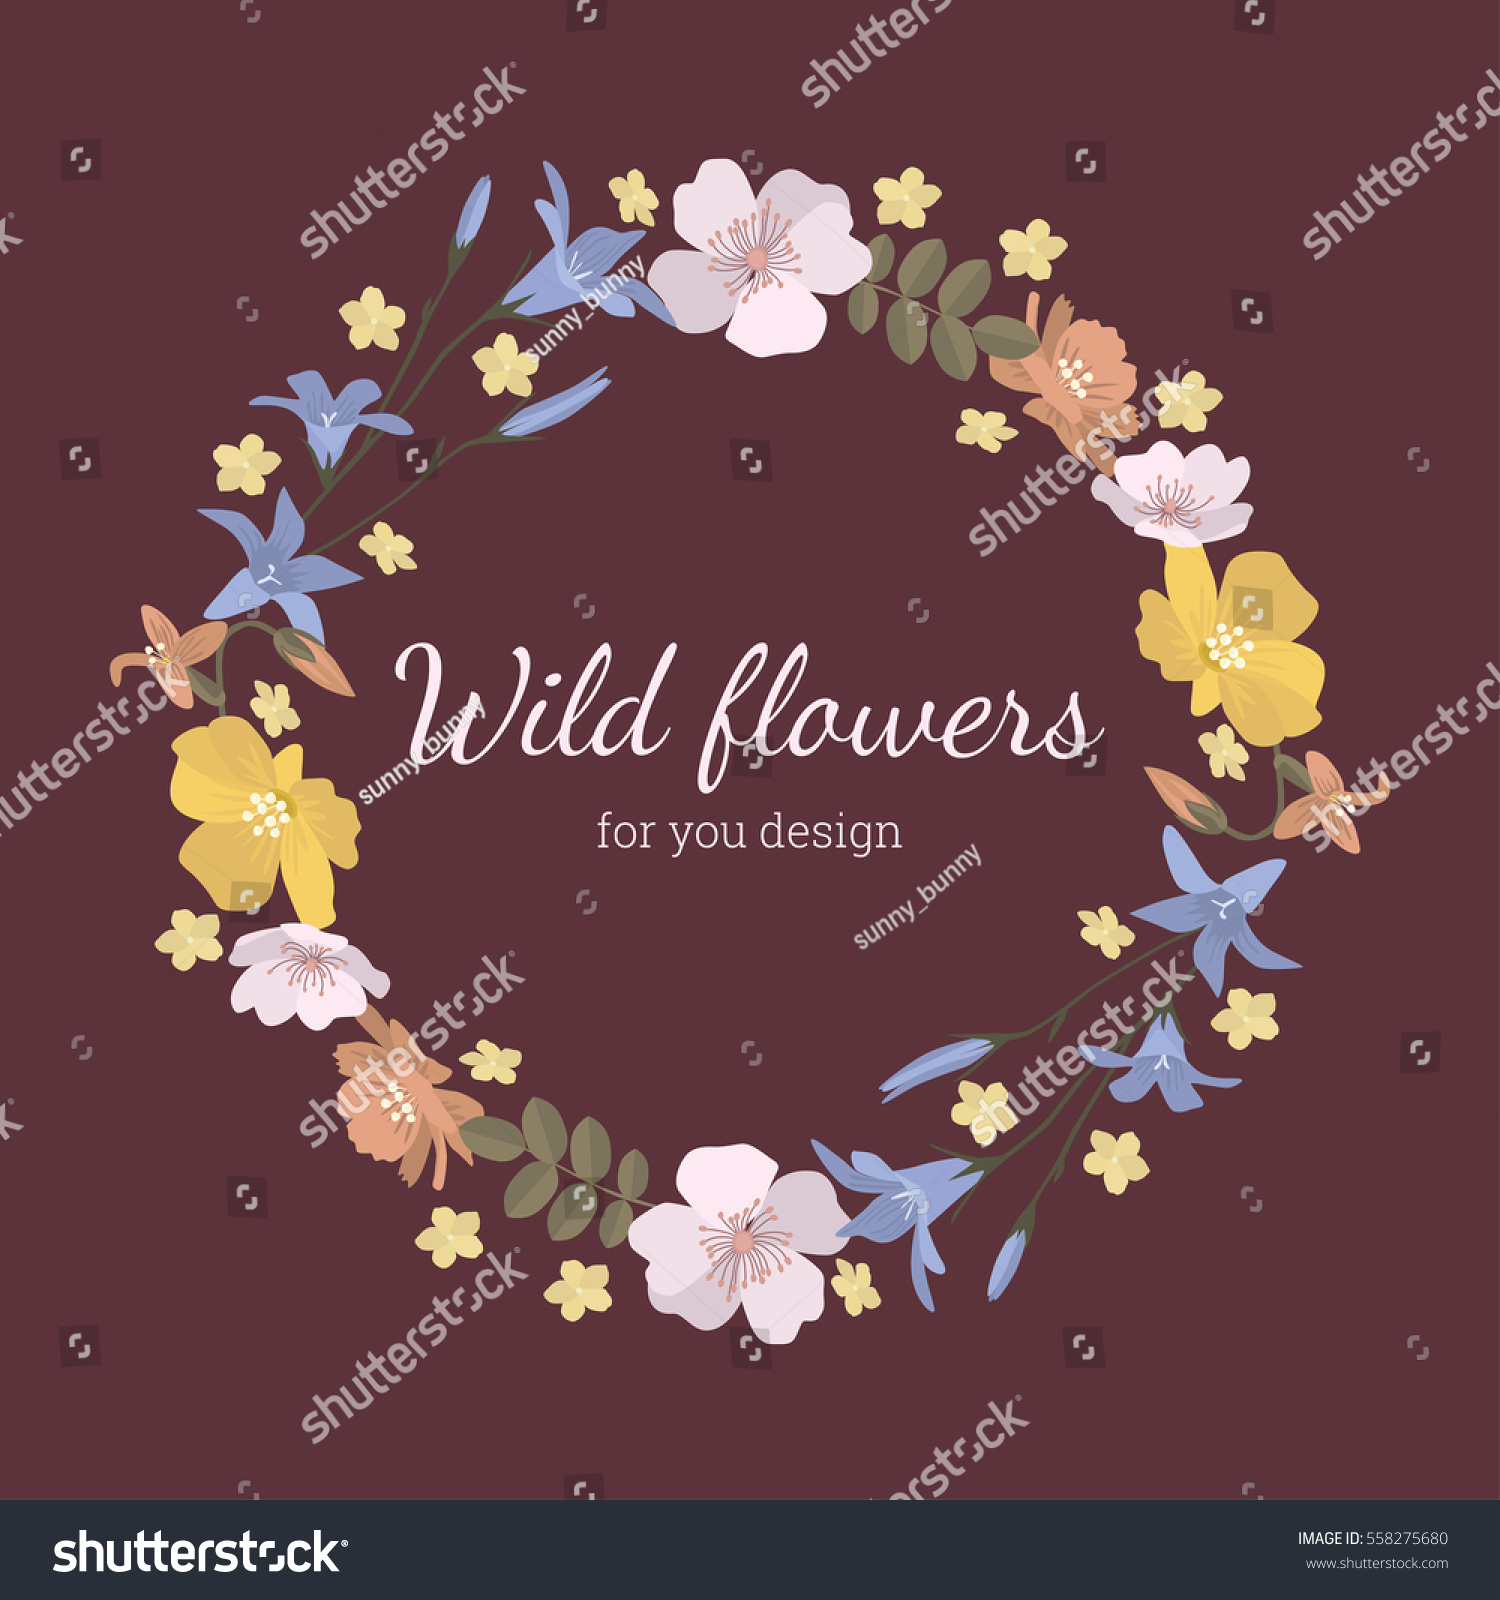 06250f9f2 Delicate round frame of cute wild flowers. Pattern can be used for design,  decor